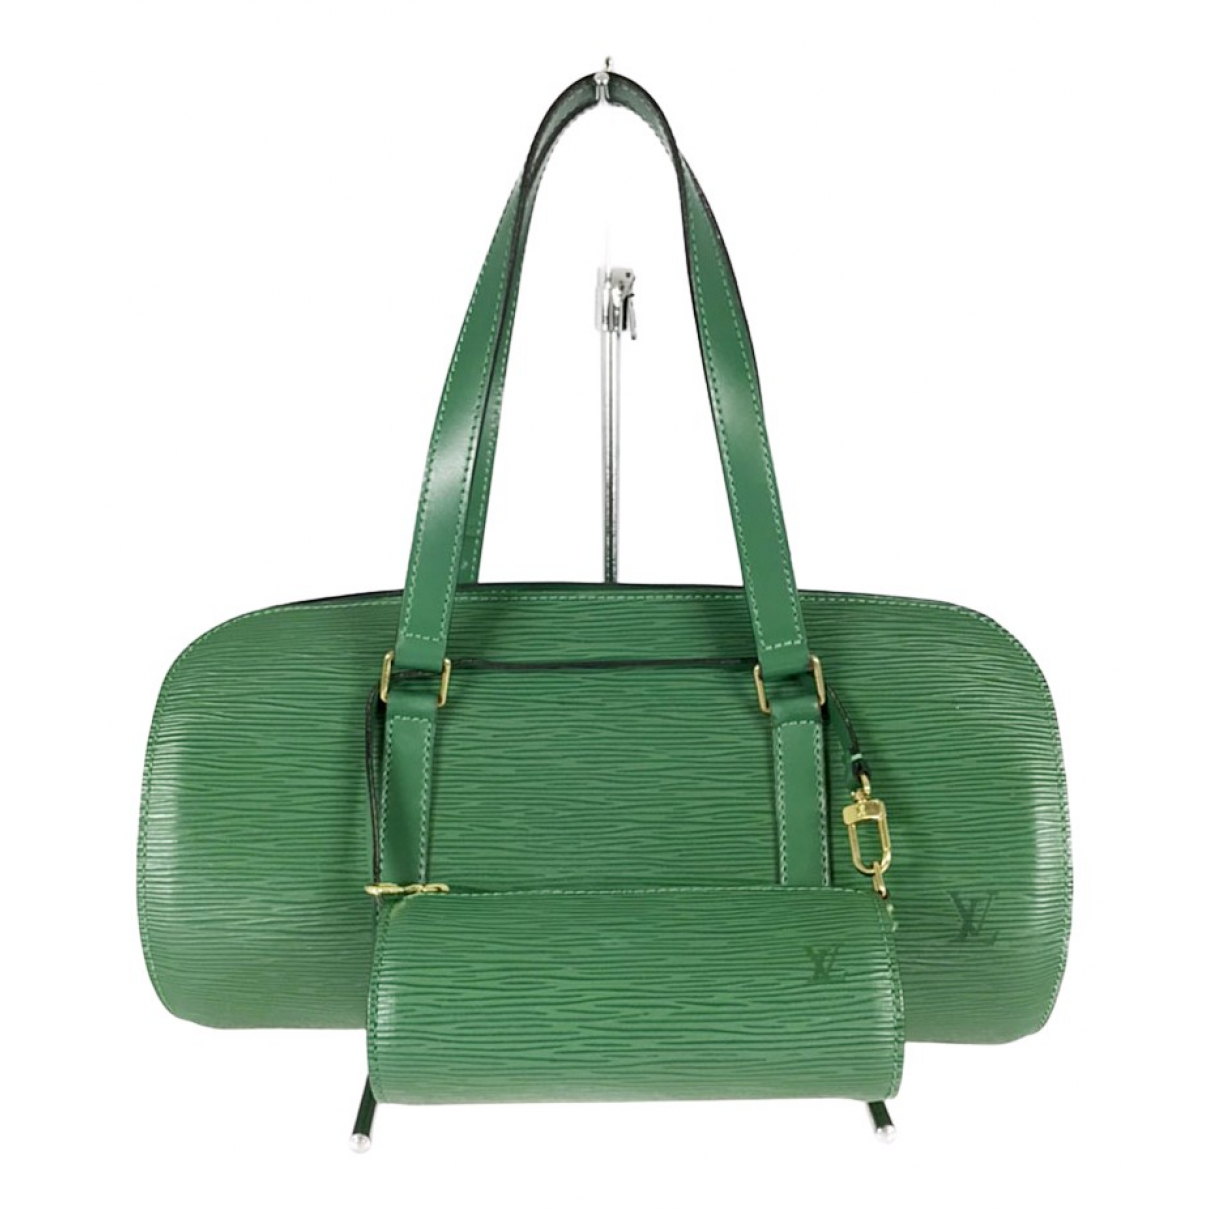 Louis Vuitton Papillon Green Leather handbag for Women \N